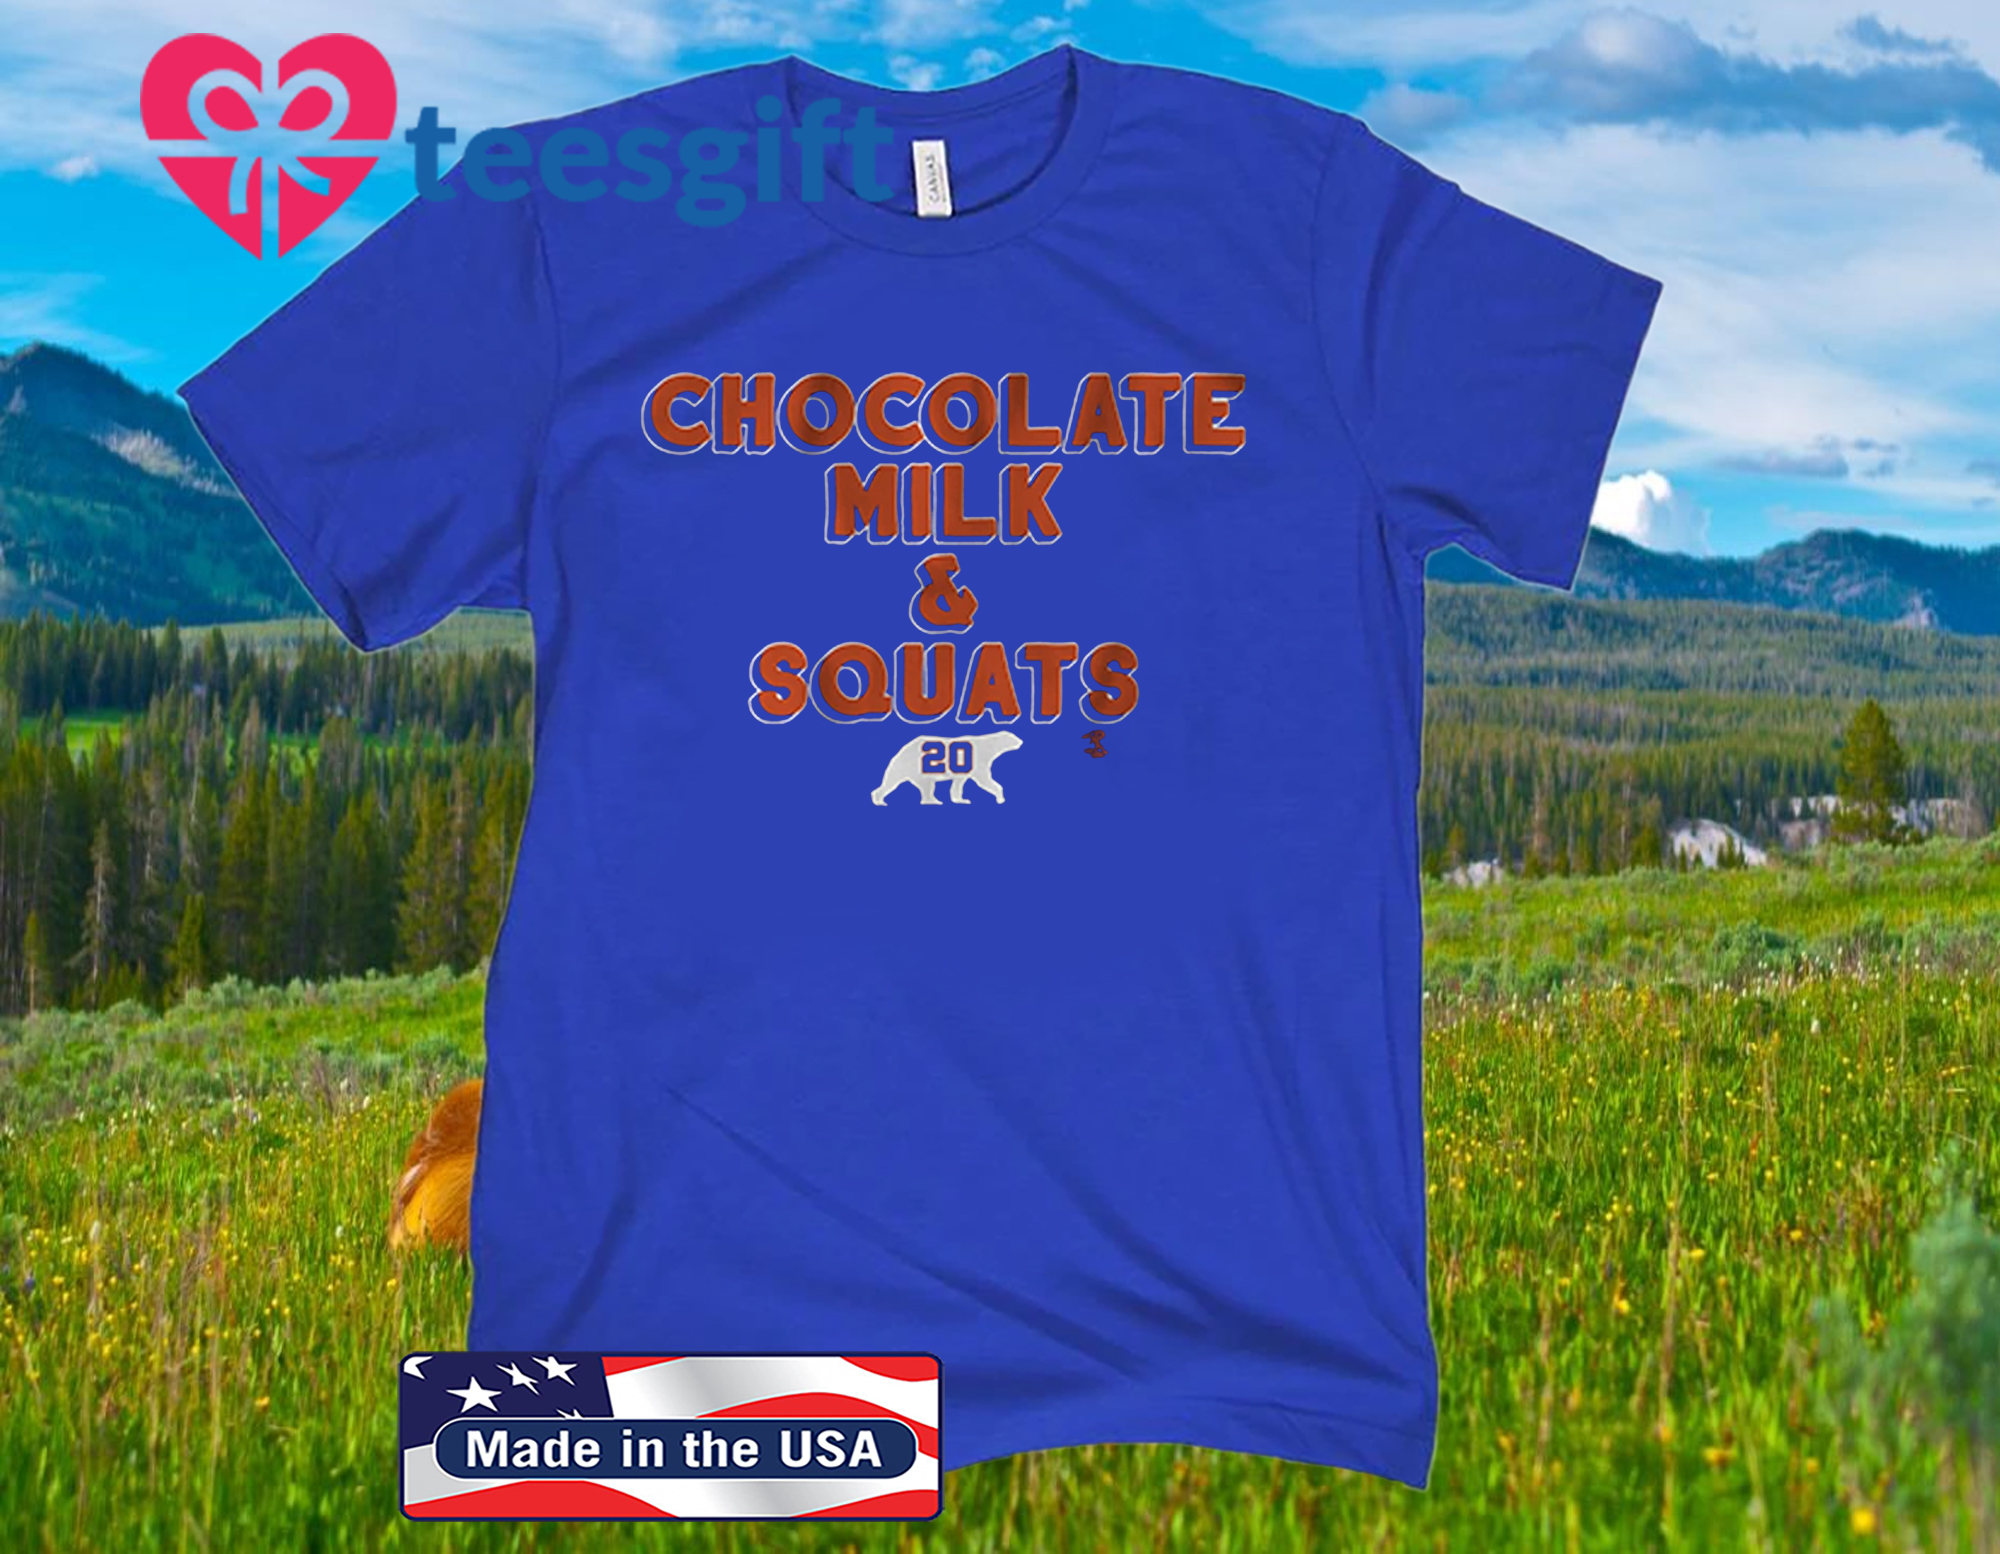 Pete Alonso Chocolate Milk & Squats 2020 Shirt - MLBPA Licensed